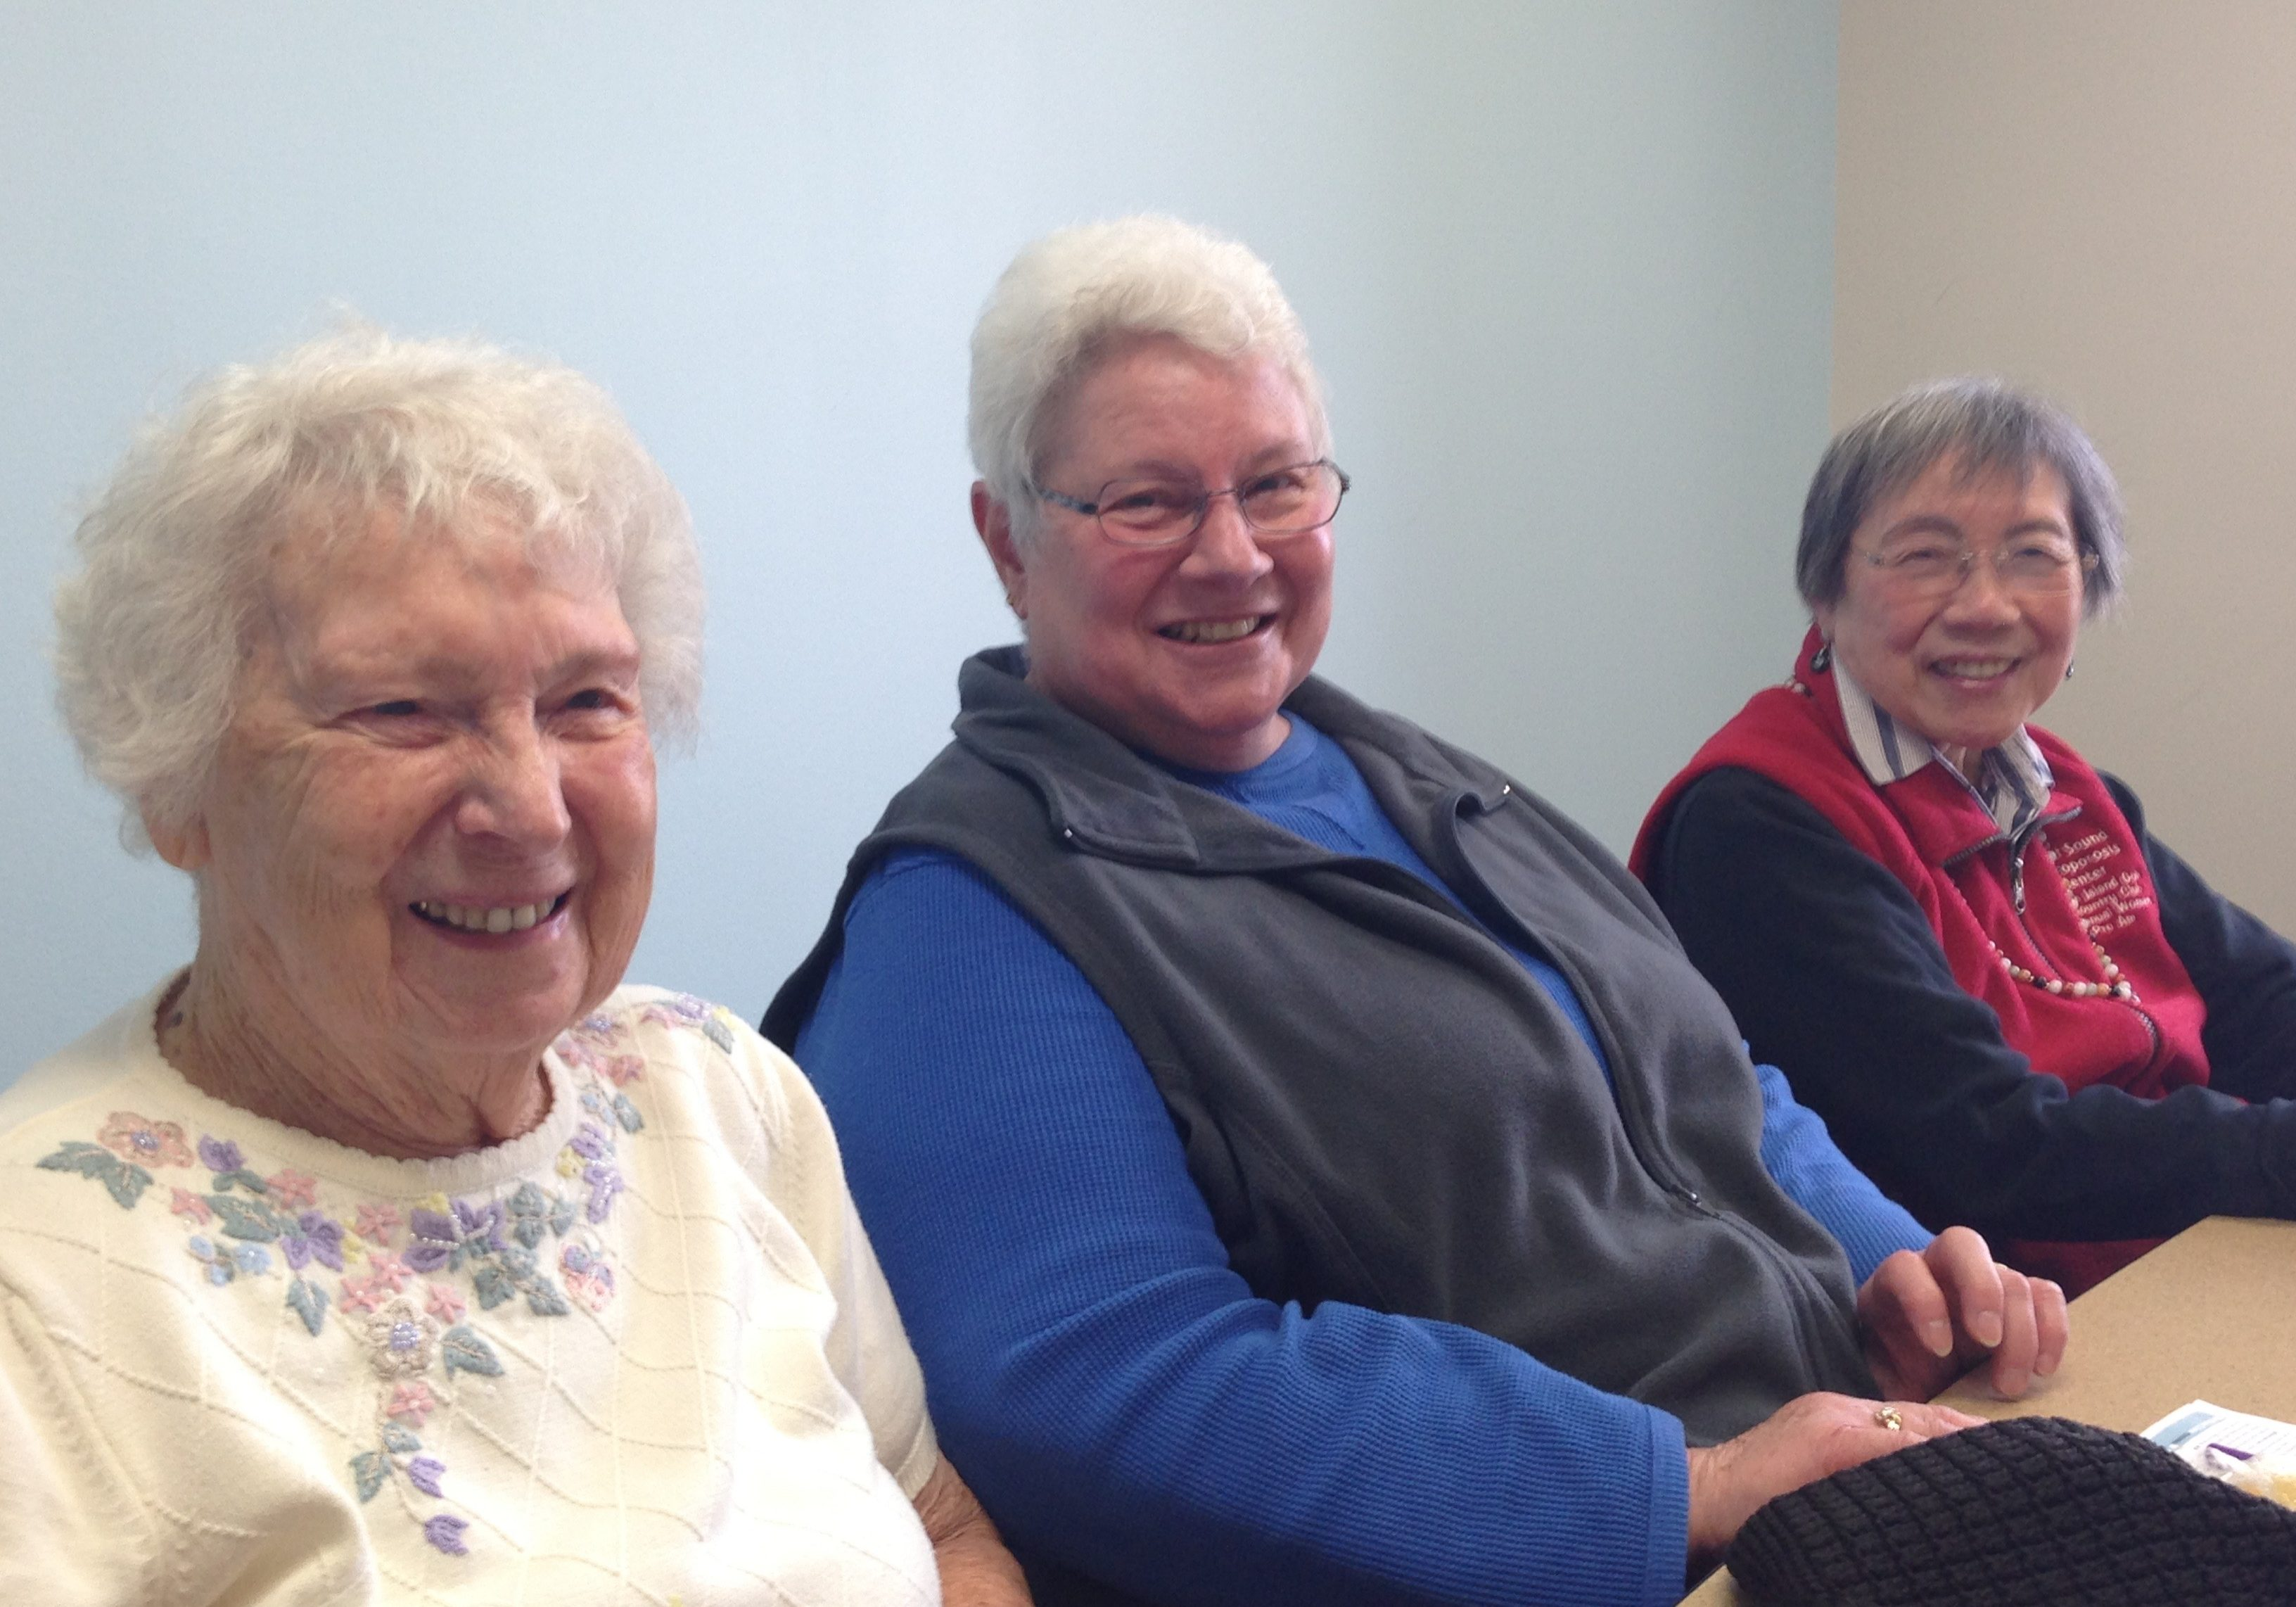 Osteoporosis support group